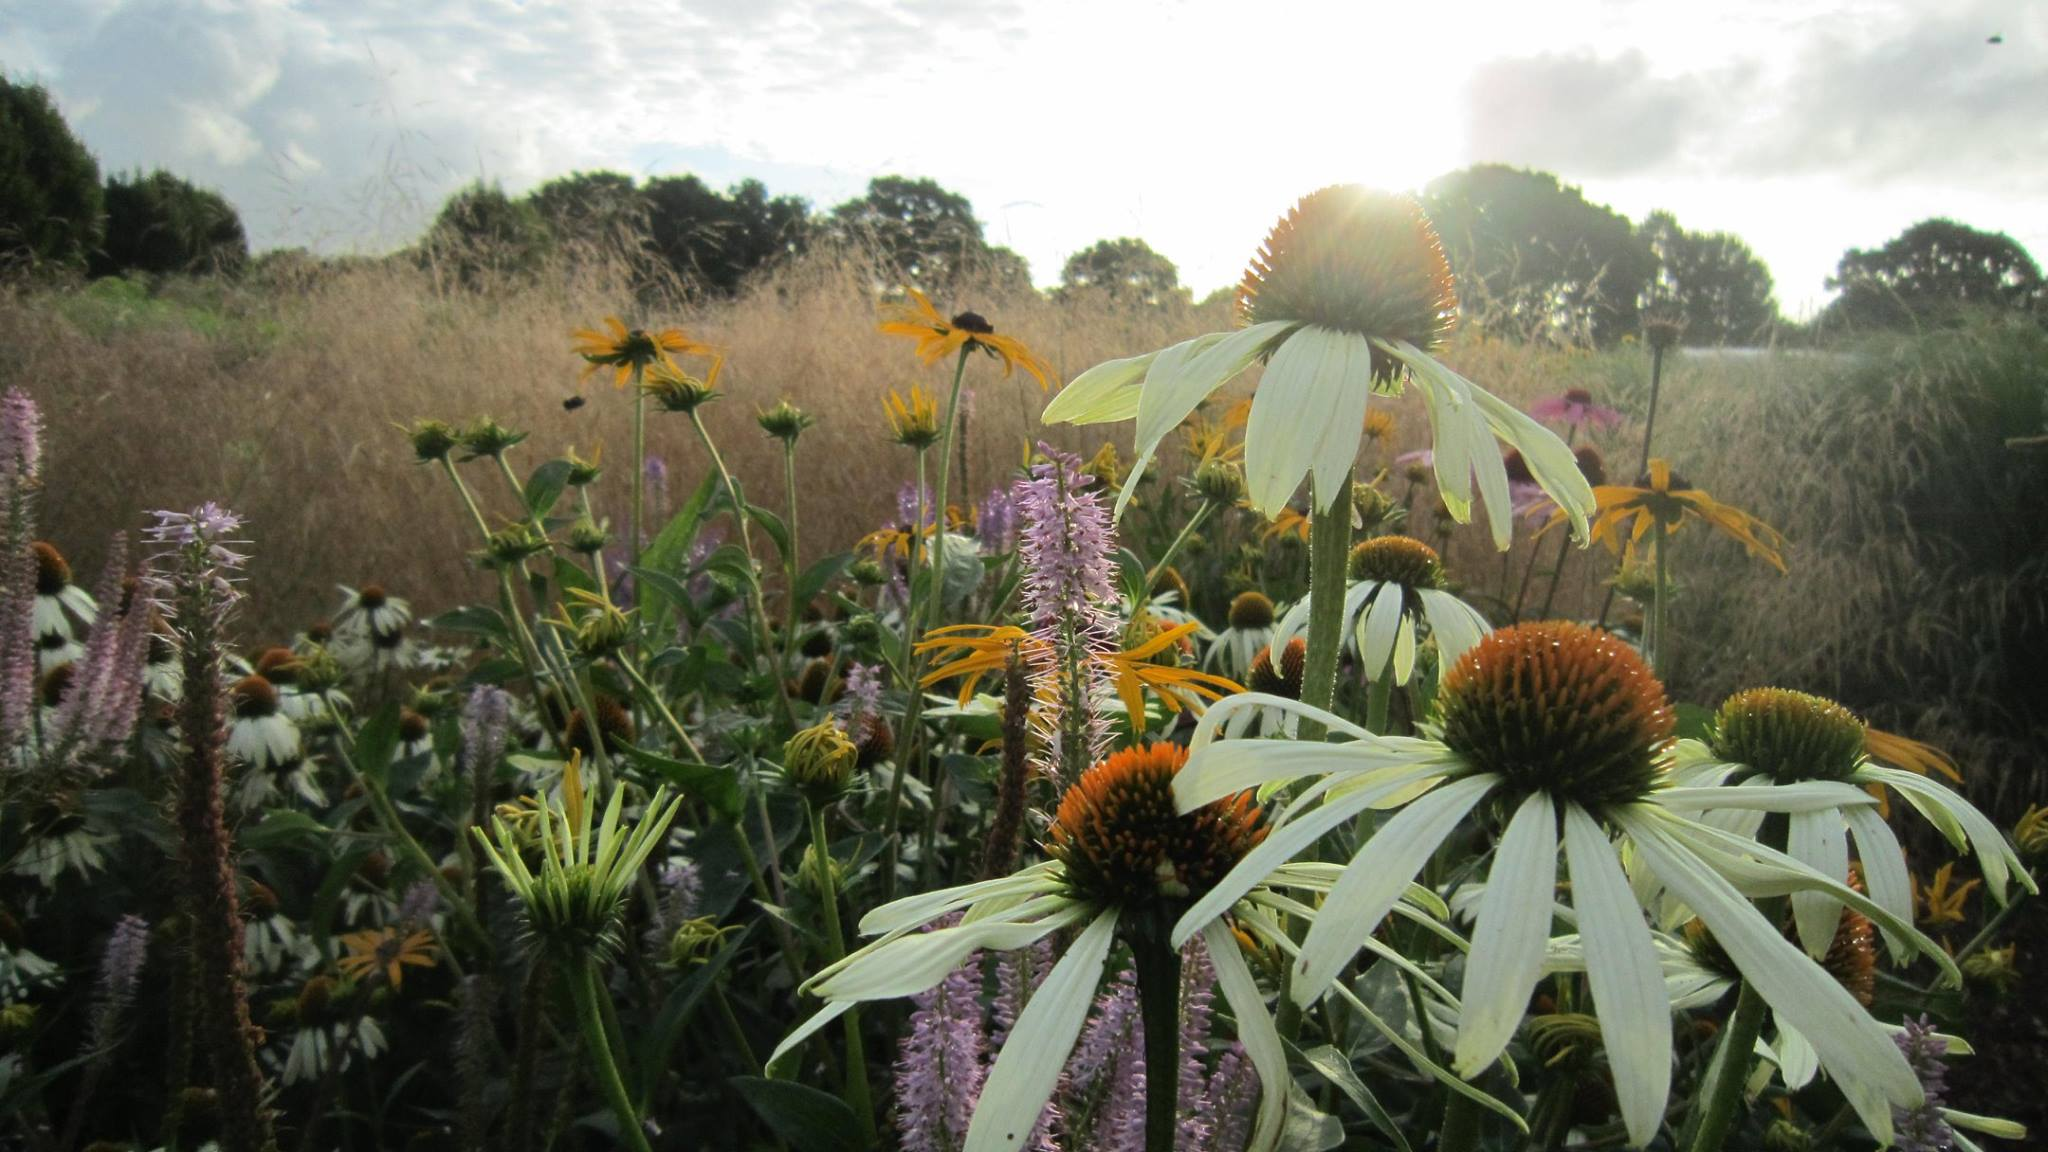 Close up image of wild flowers with the sun shining through them